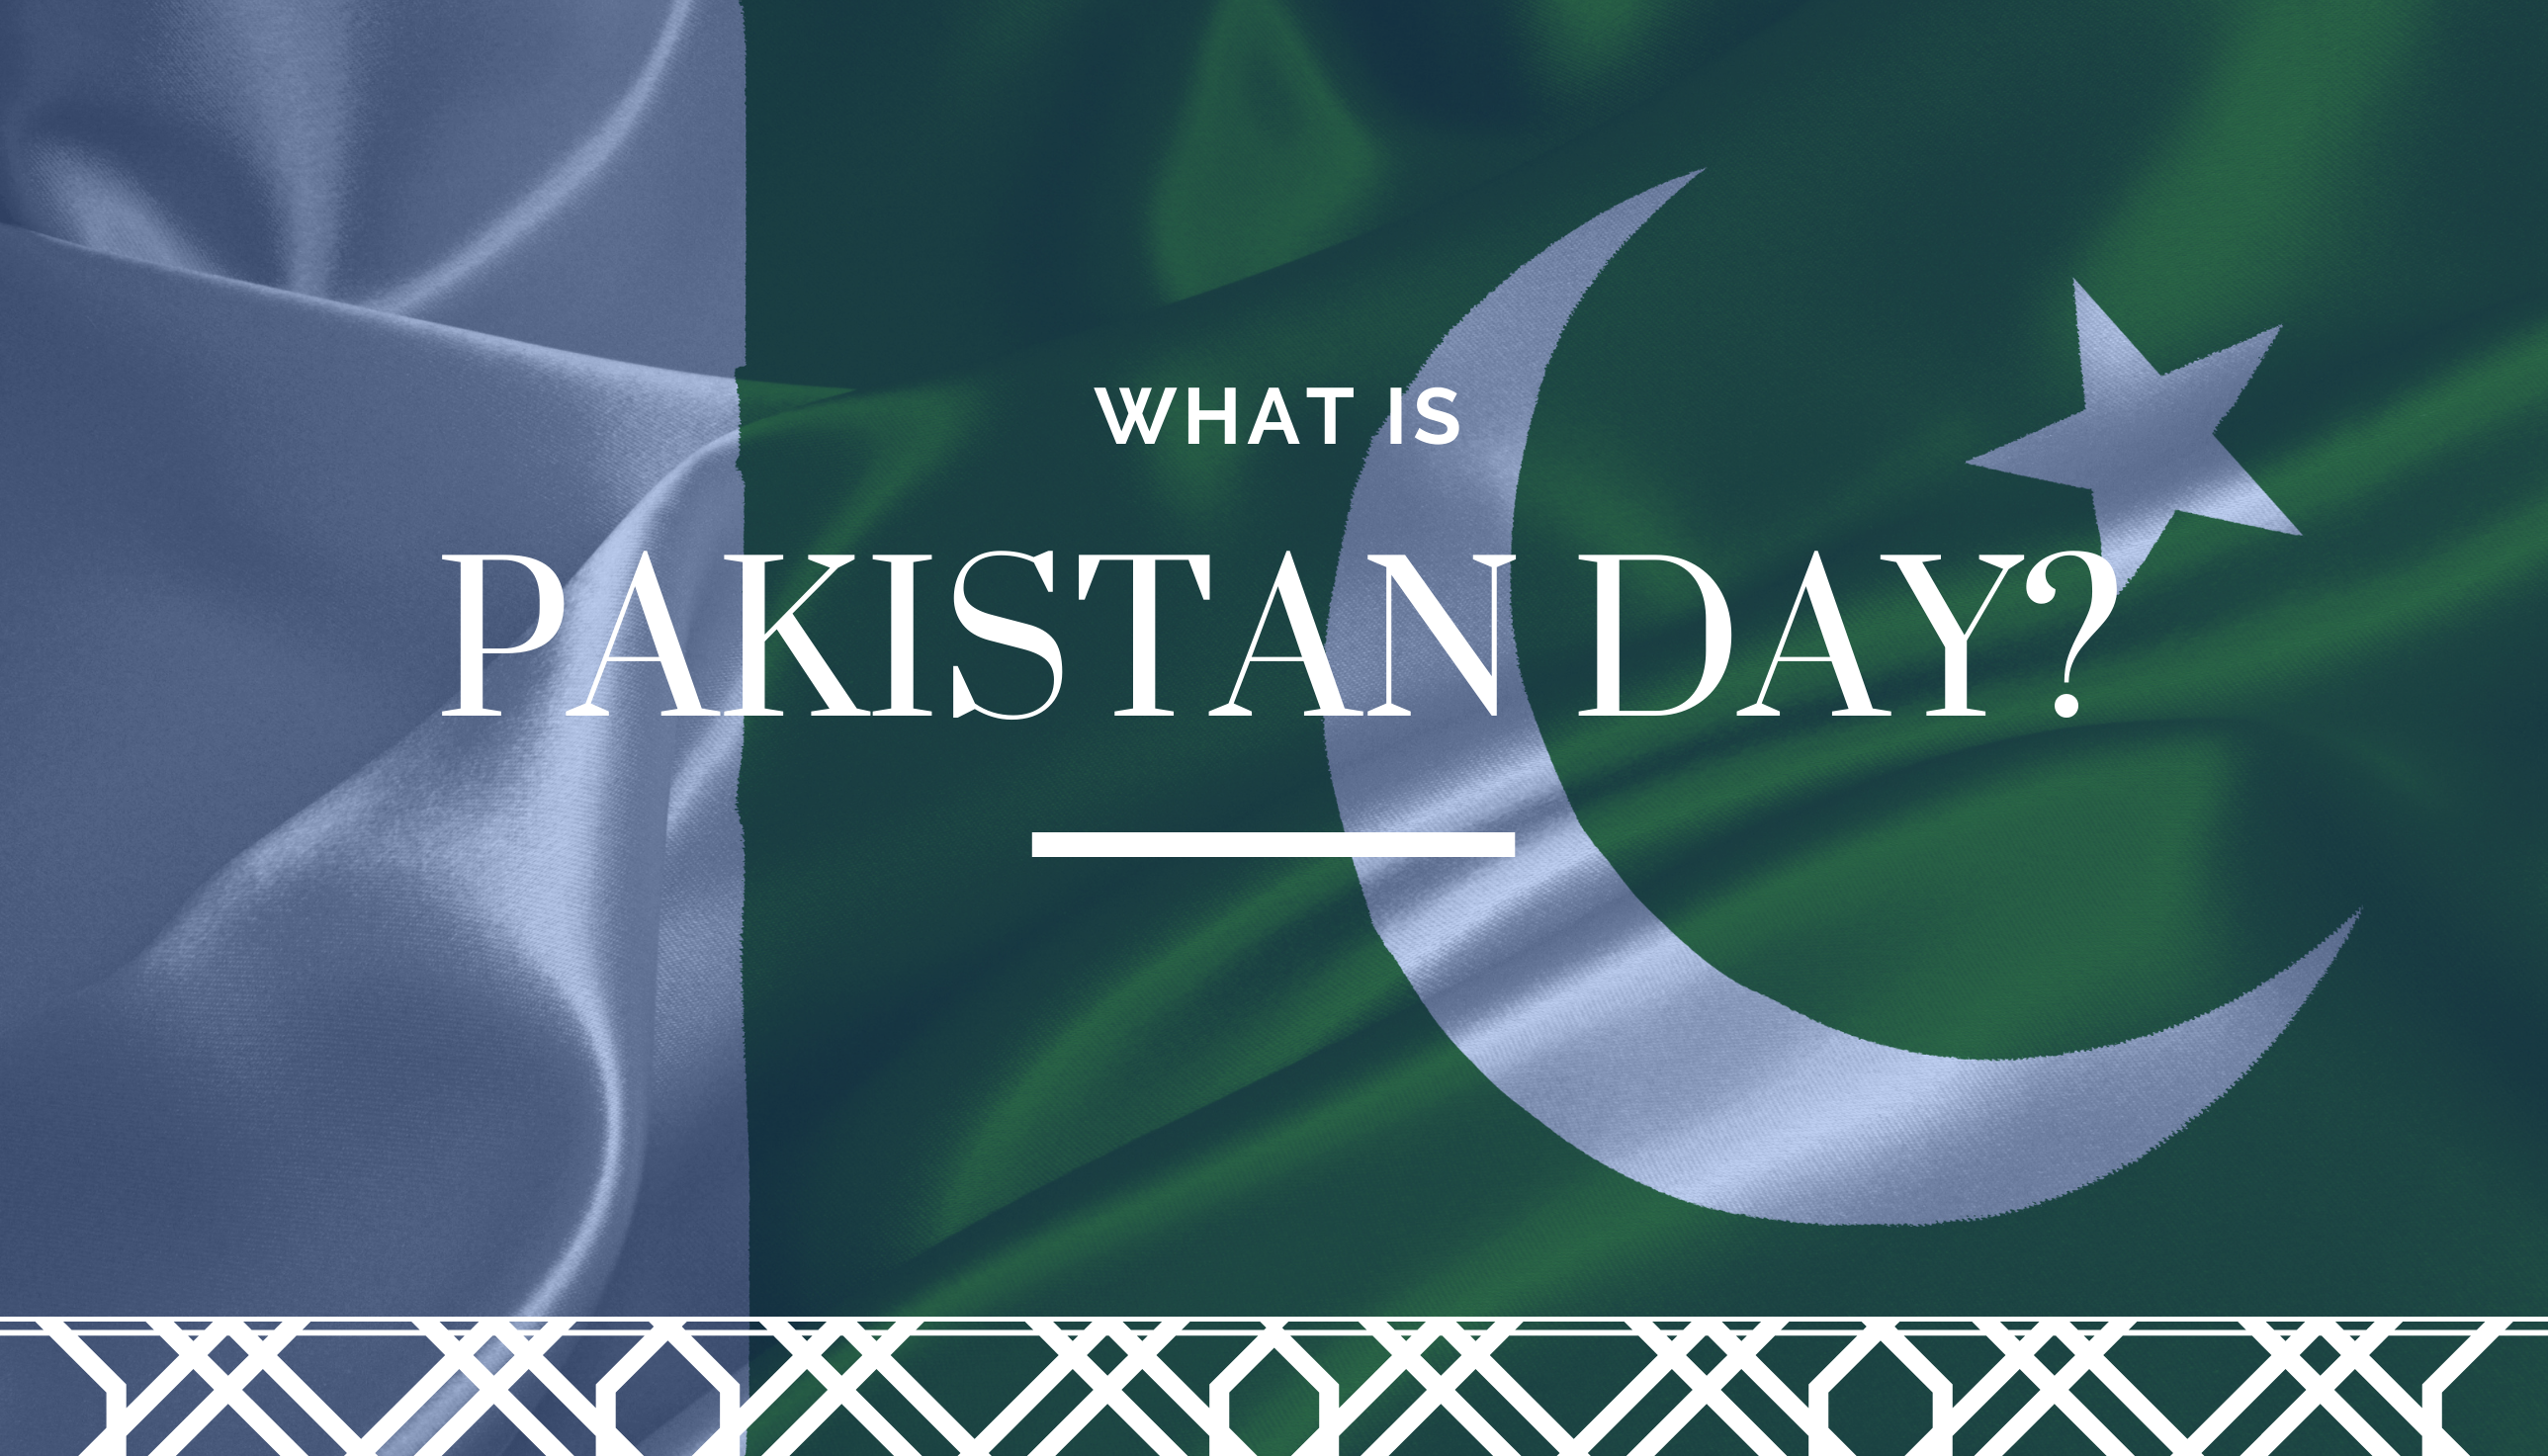 What is Pakistan Day?